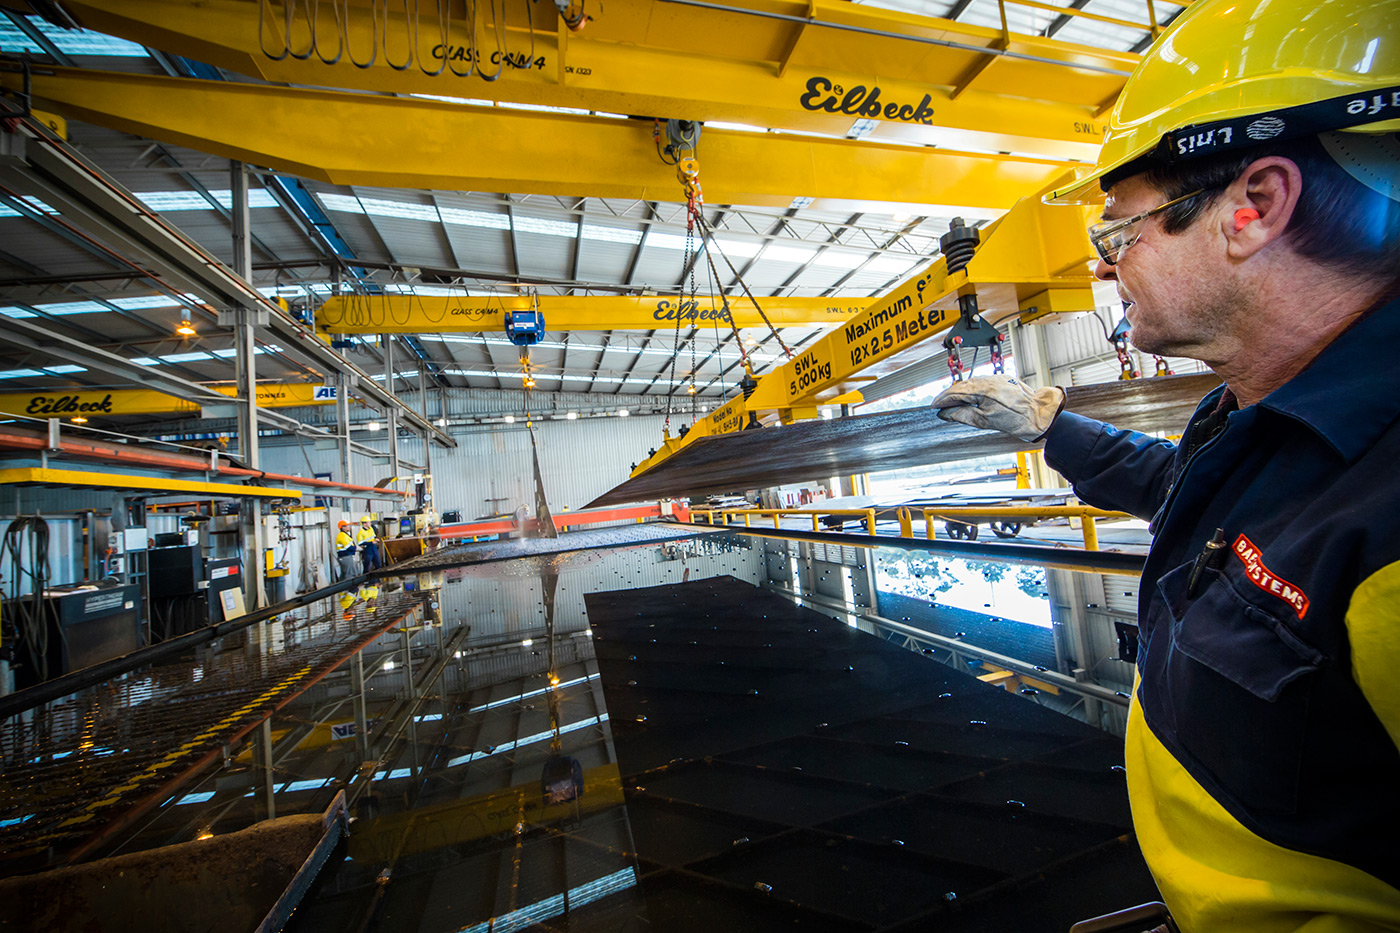 <p>Cutting steel using Australia's largest plasma cutter at BAE Systems' Henderson shipyard.</p>